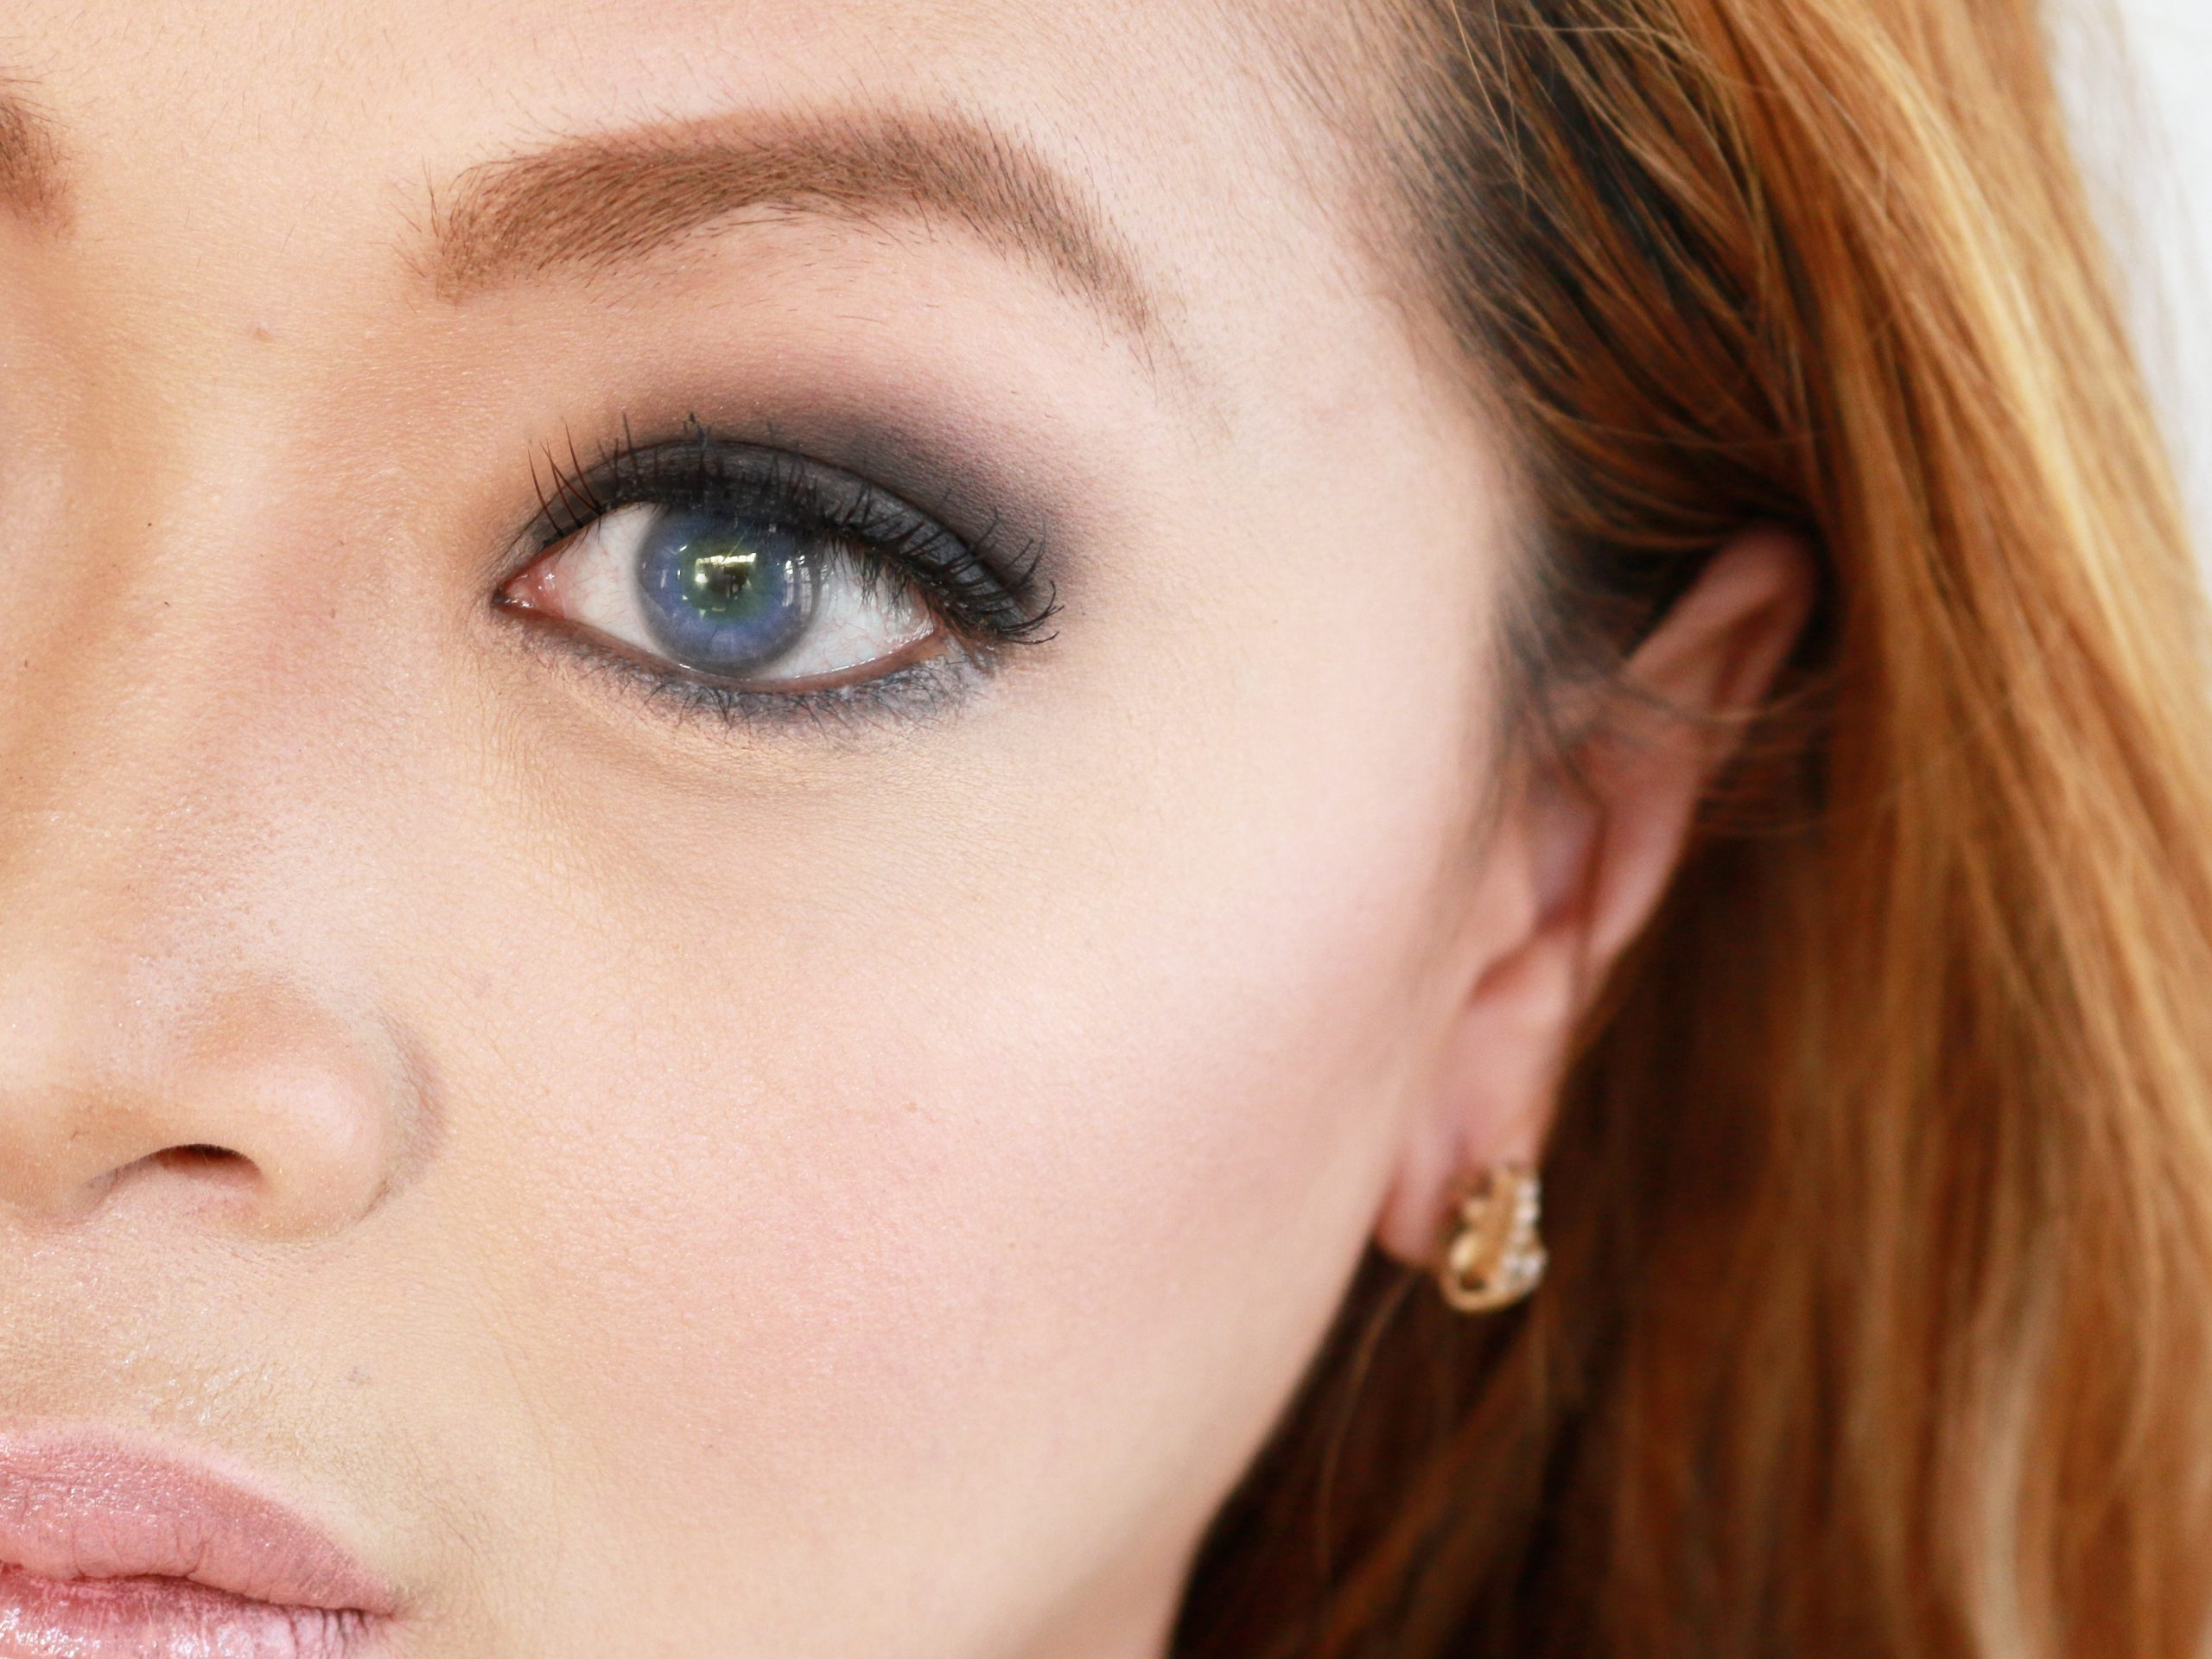 How To Do Eye Makeup For Blue Eyes (With Pictures) - Wikihow intended for How To Put On Makeup For Blue Eyes And Blonde Hair